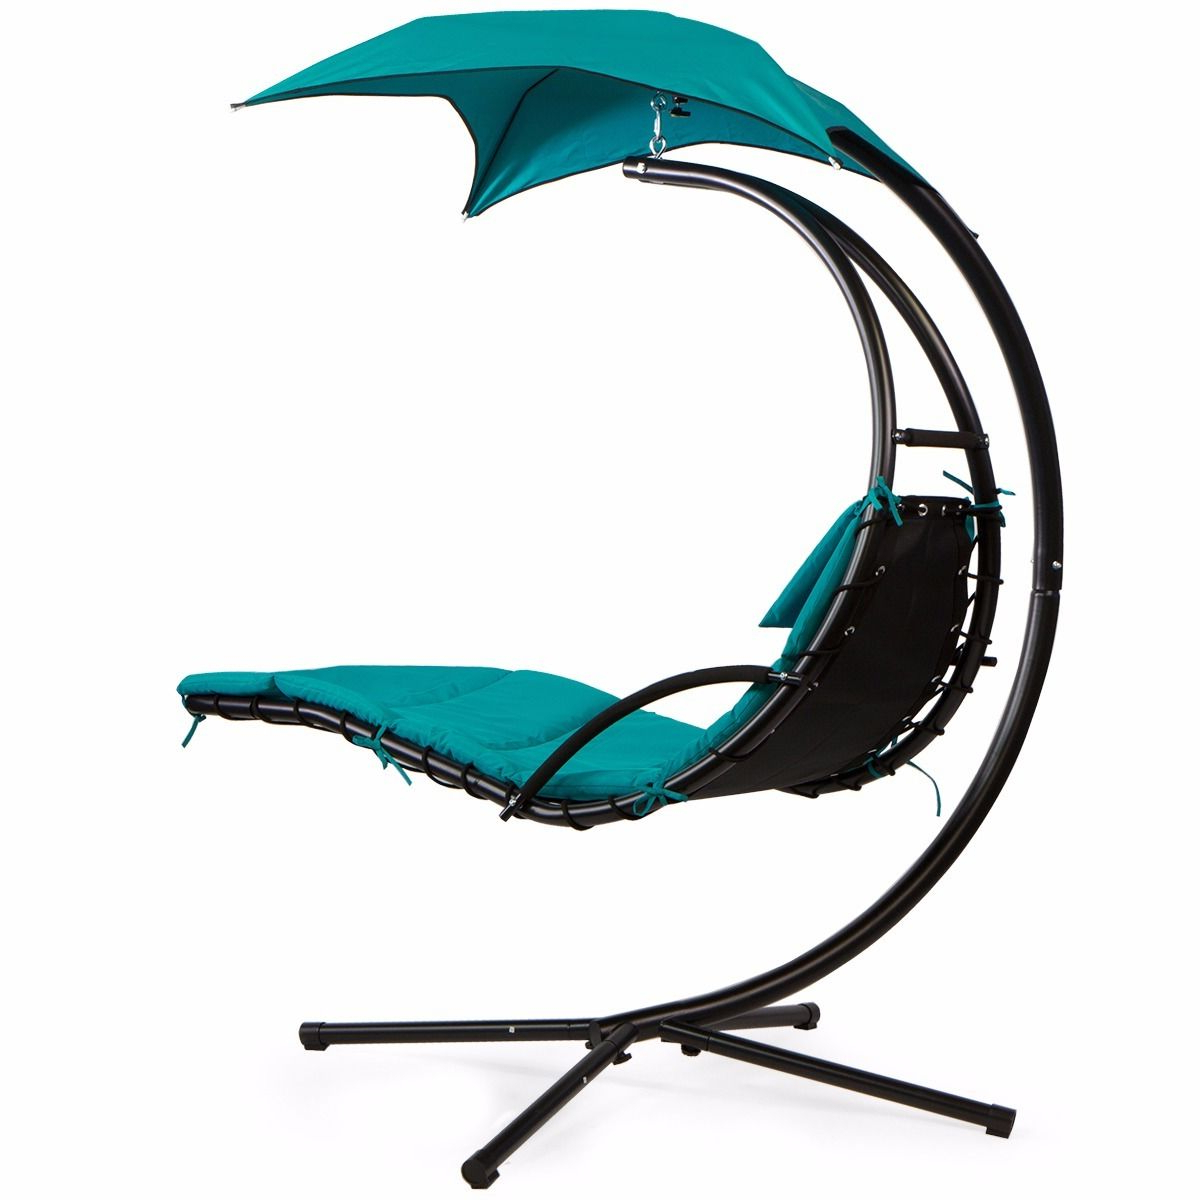 30 Ideas of Outdoor Pvc-Coated Polyester Porch Swings With ... on Hanging Helicopter Dream Lounger Chair id=13537